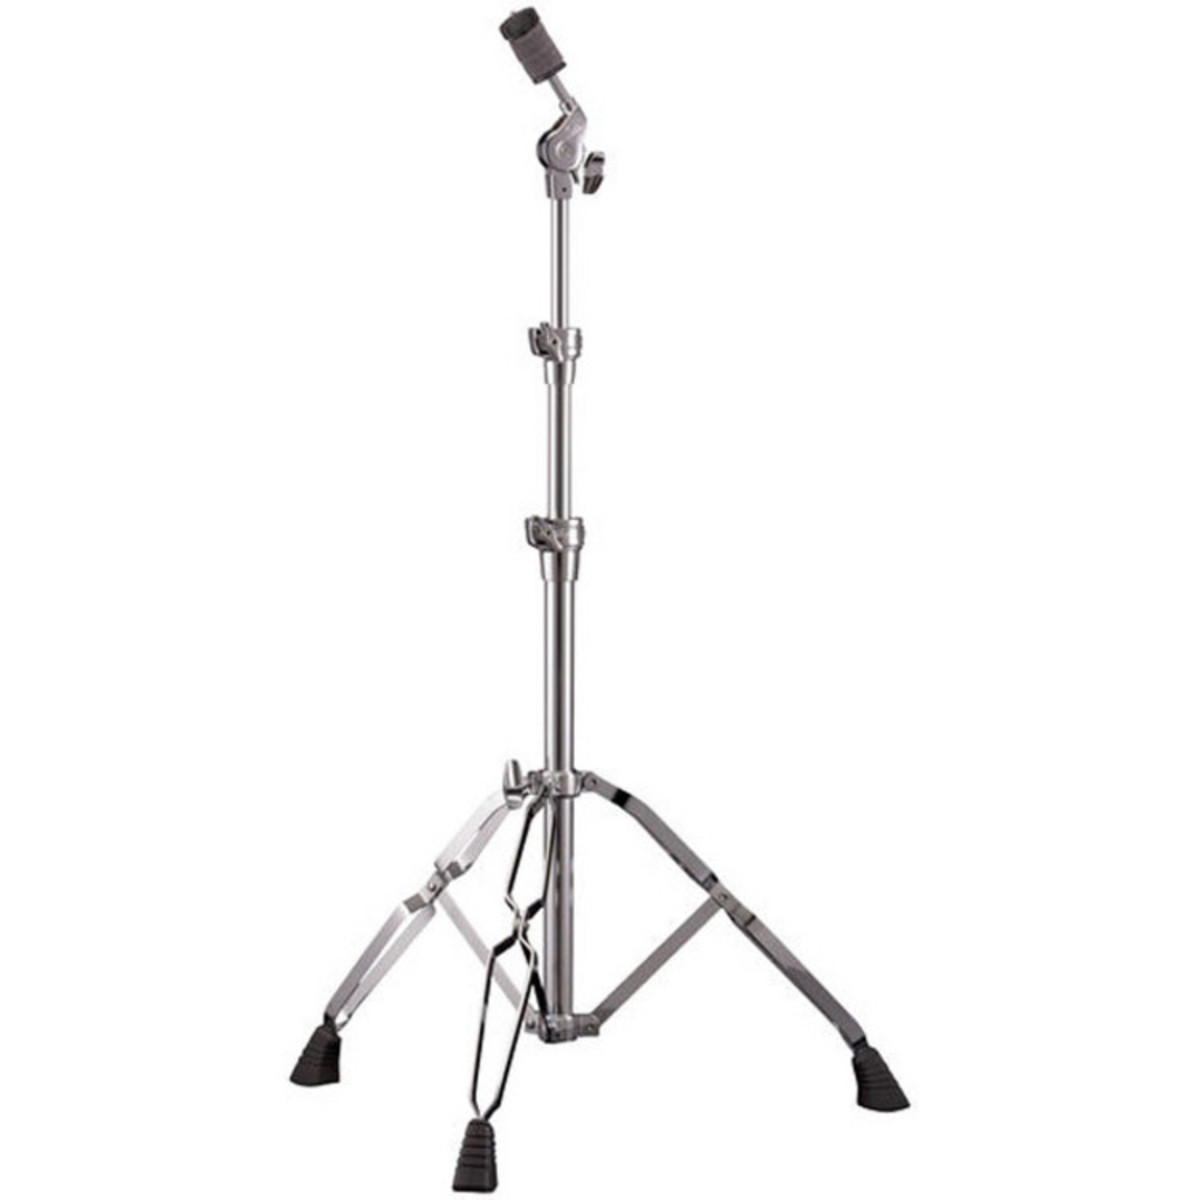 Pearl C 930 Cymbal Stand With Uni Lock Tilter At Gear4music